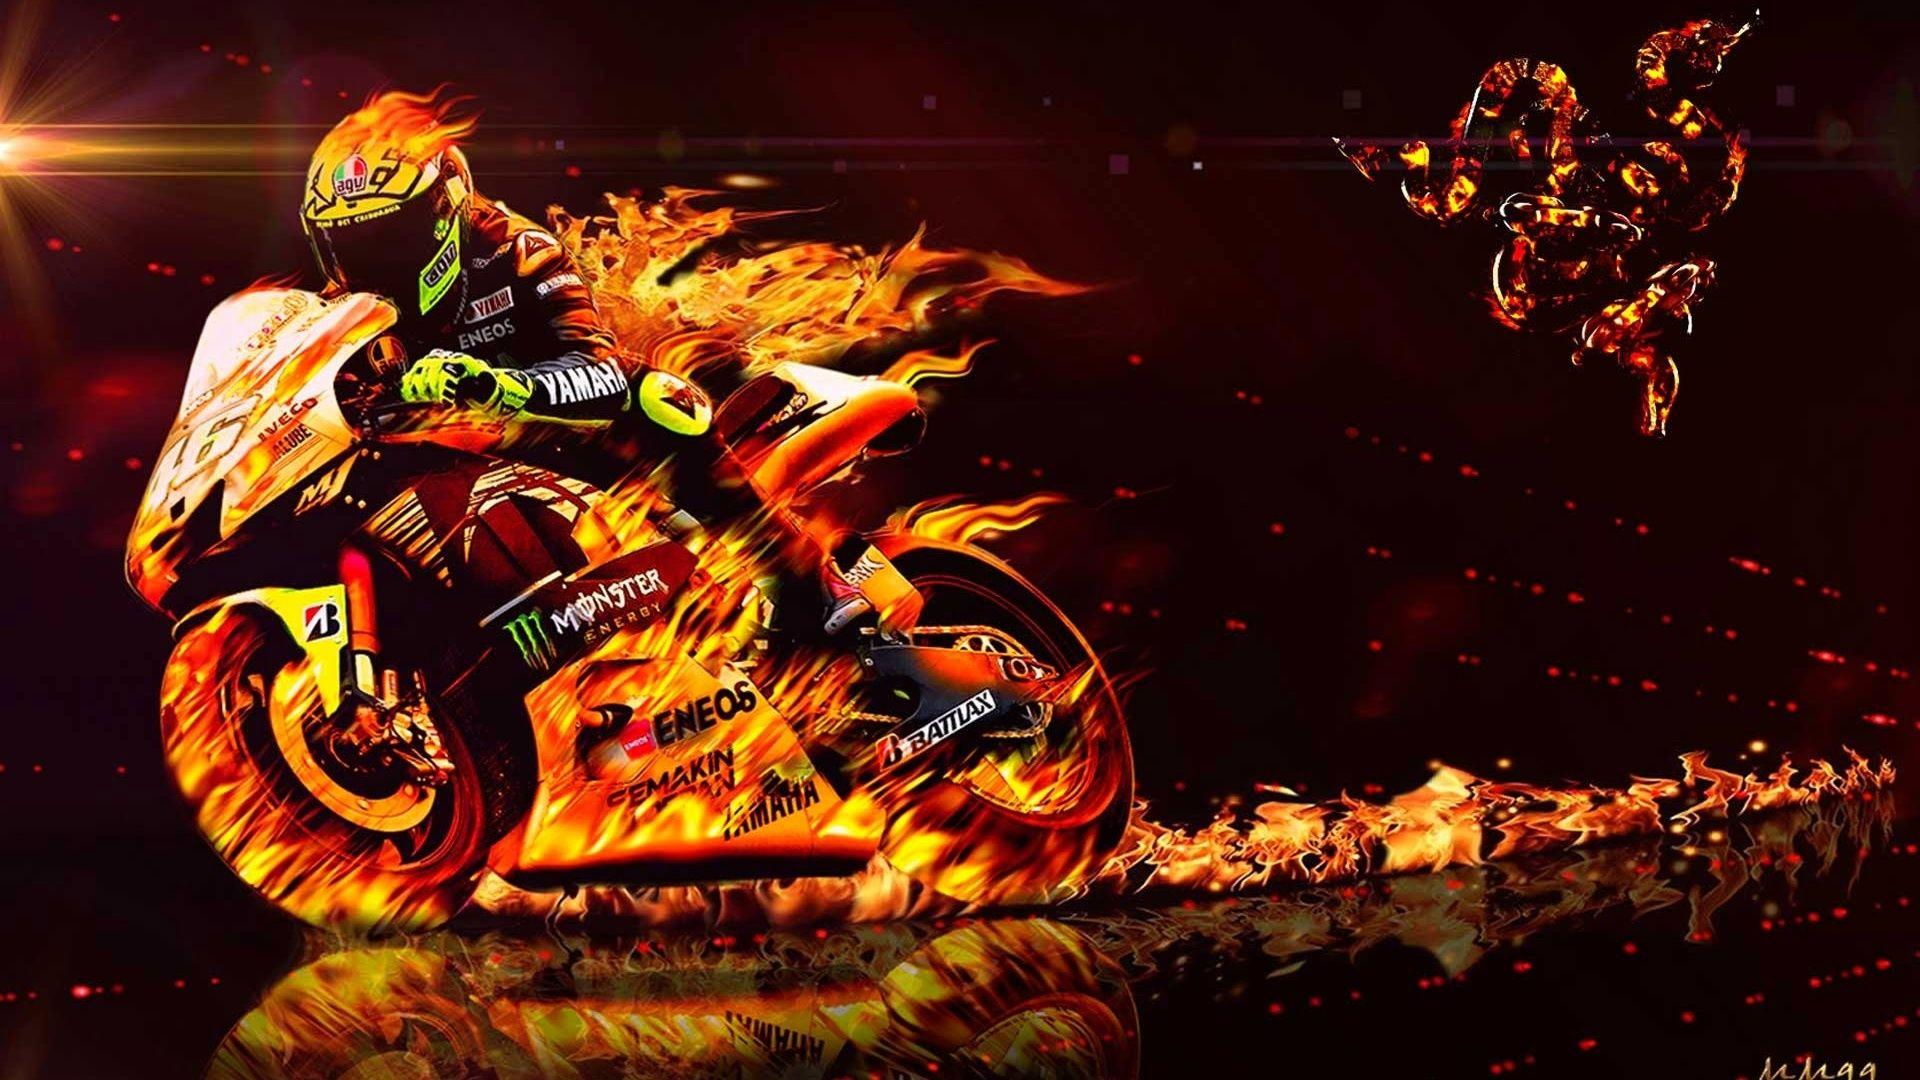 Valentino Rossi, Fire, Flame, Bikes, Motorcycle, 2013 Valentino